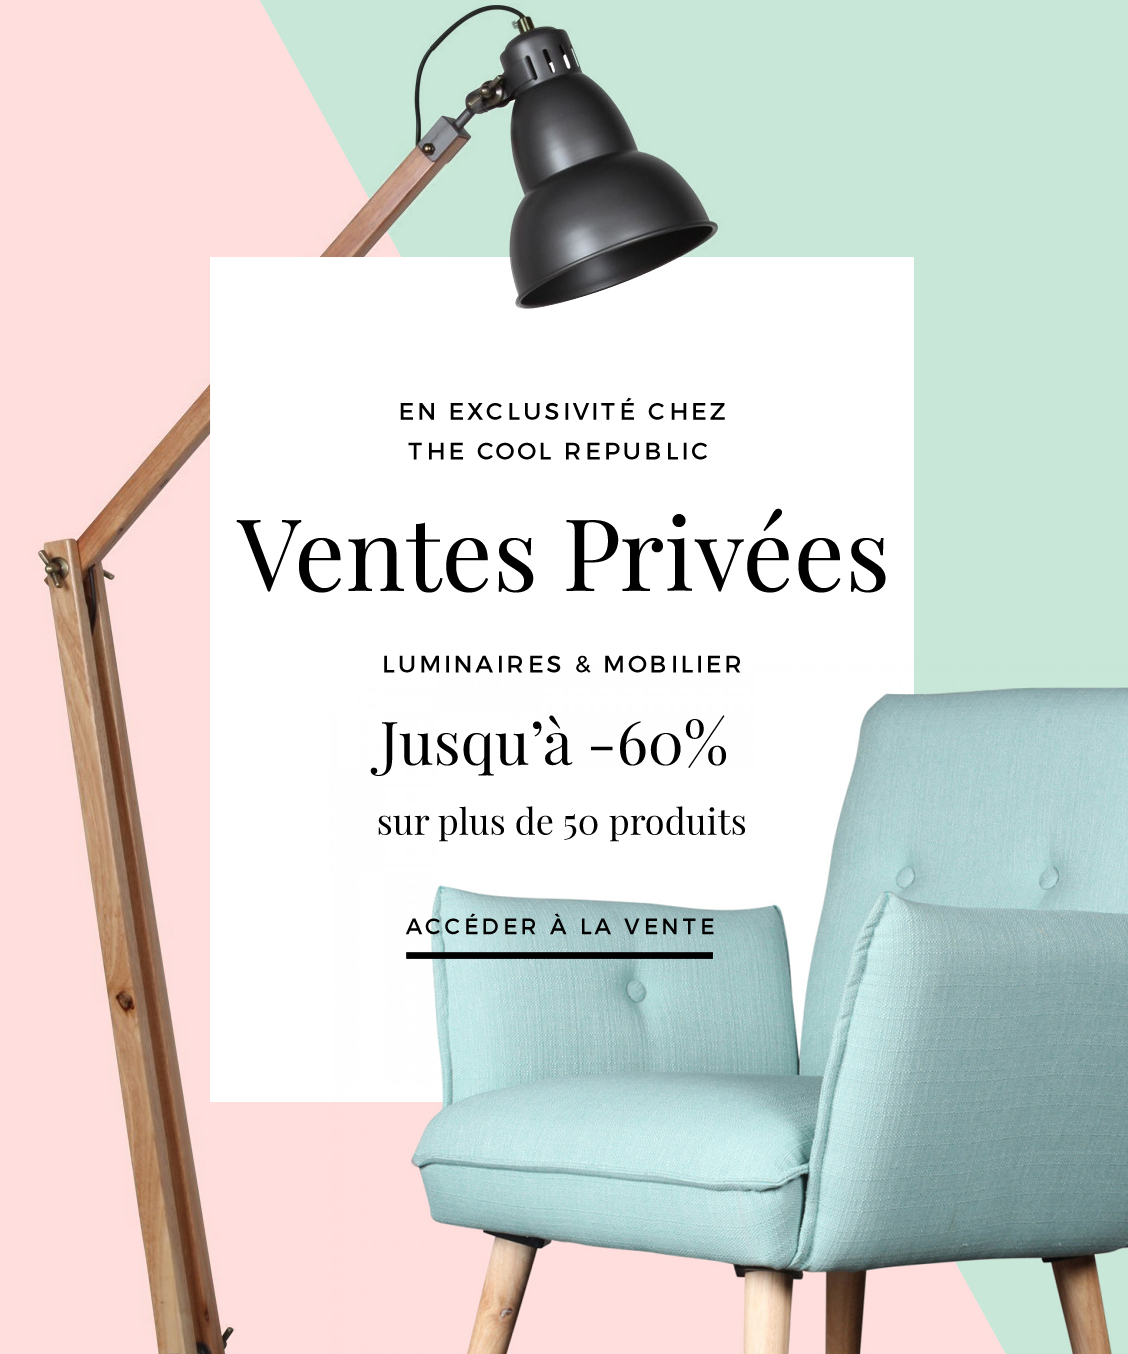 Vente priv e archives le blog d co de mlc - Vente privee mobilier ...